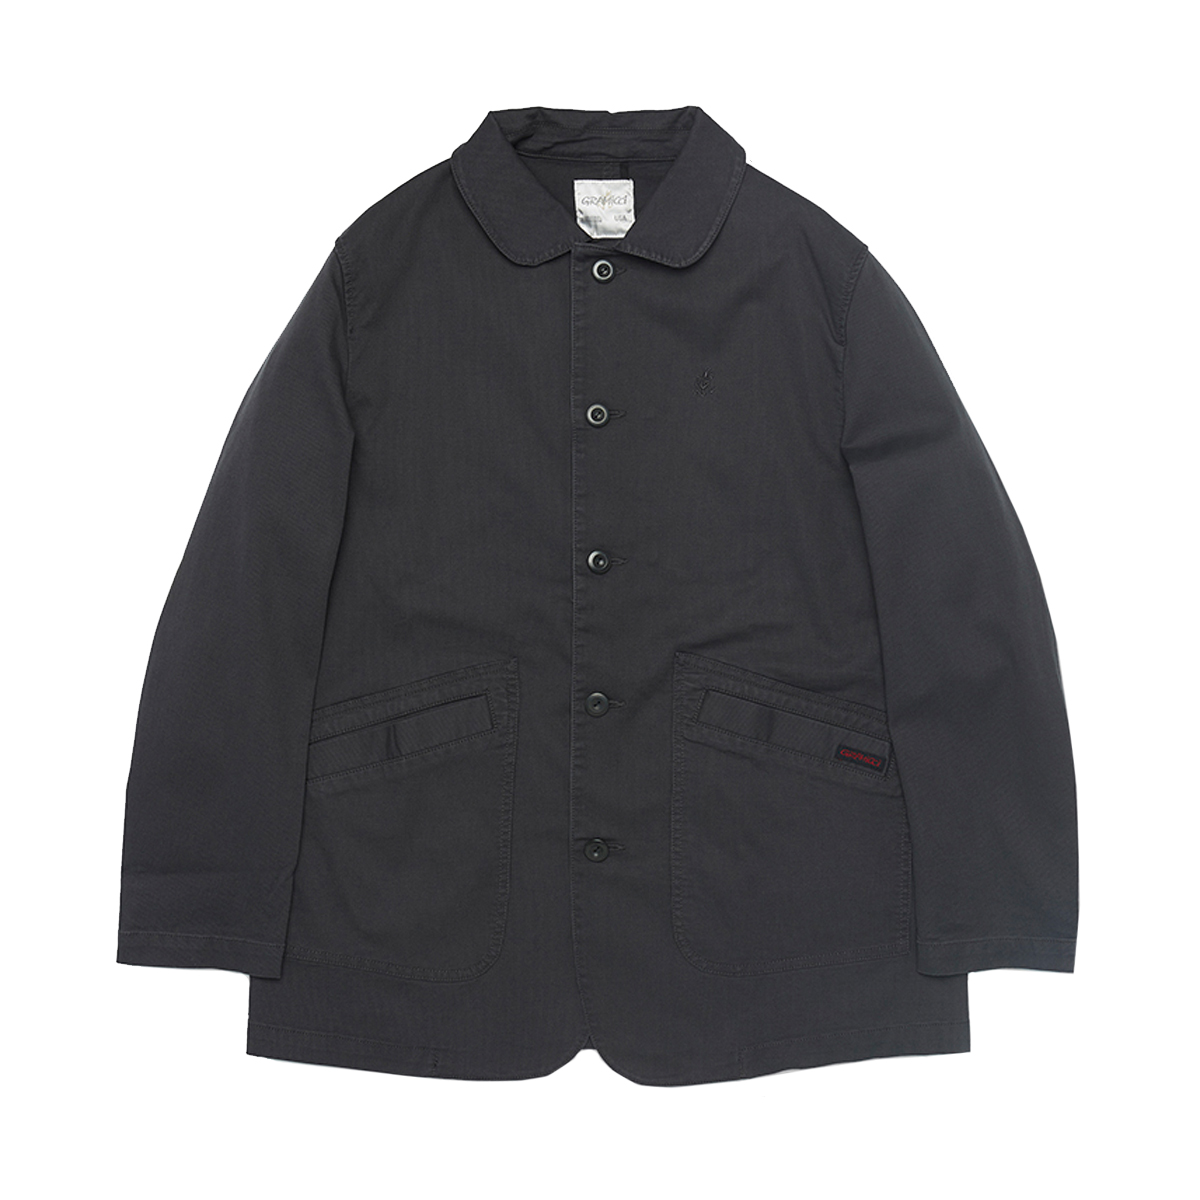 [GRAMICCI] JEAN CORD WORK JACKET 'CHARCOAL'